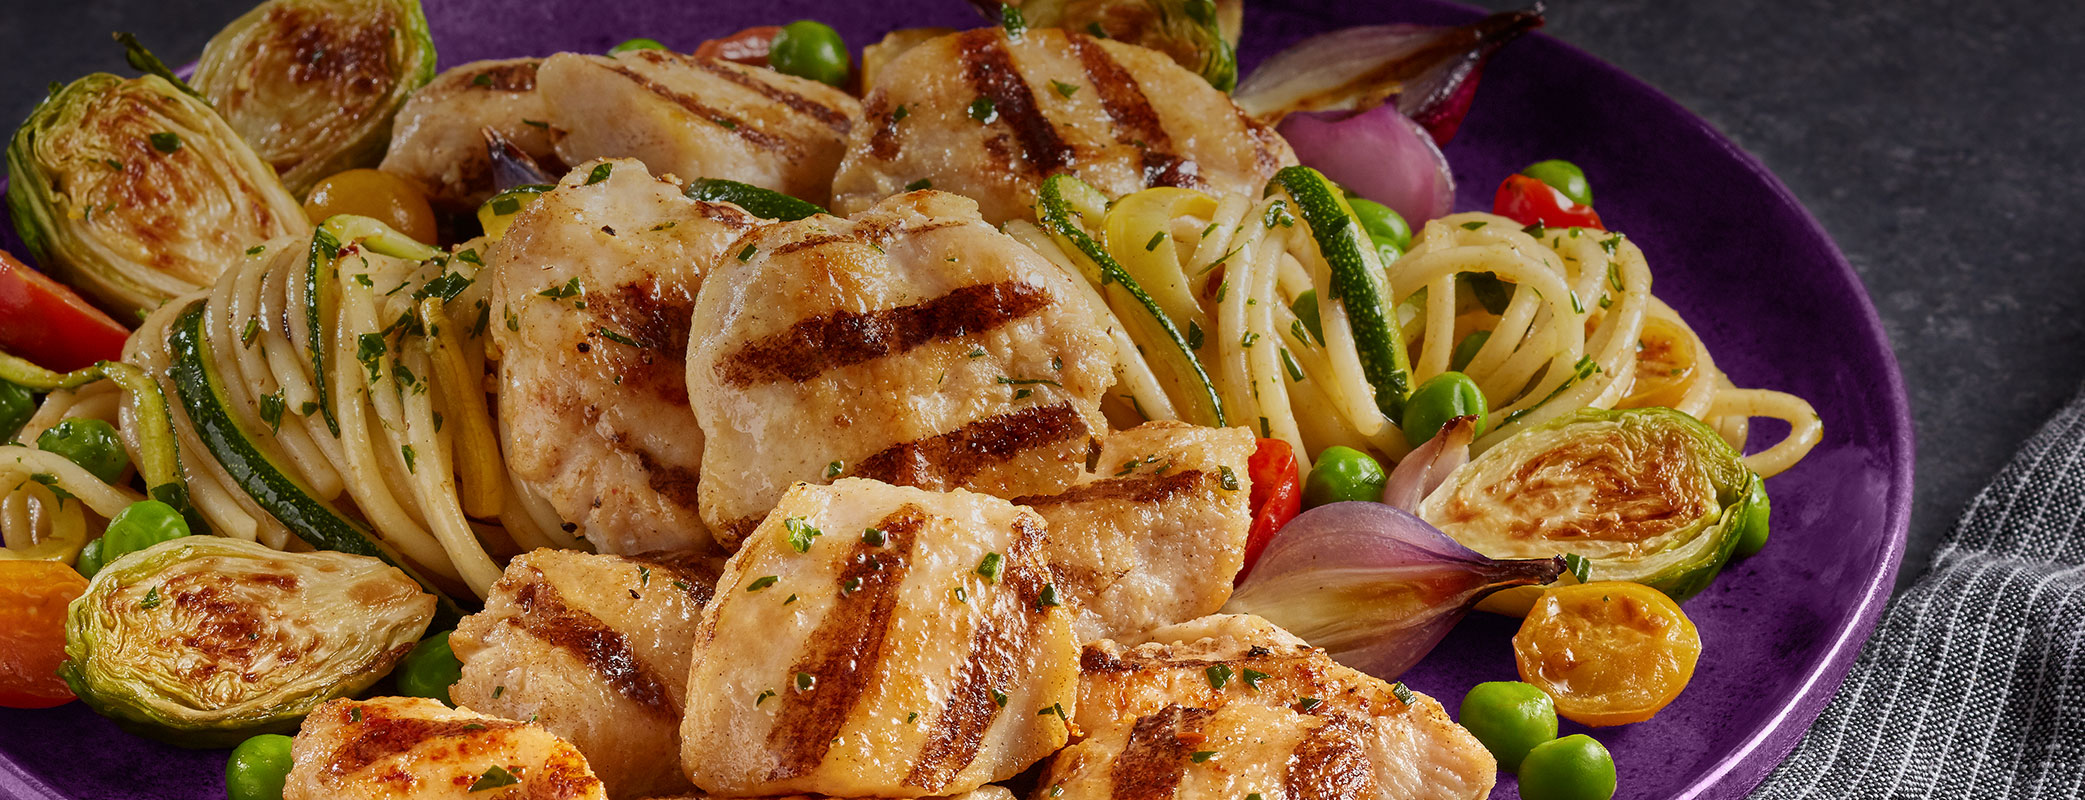 Sautéed Vegetables with Grilled Chicken Breast Chunks